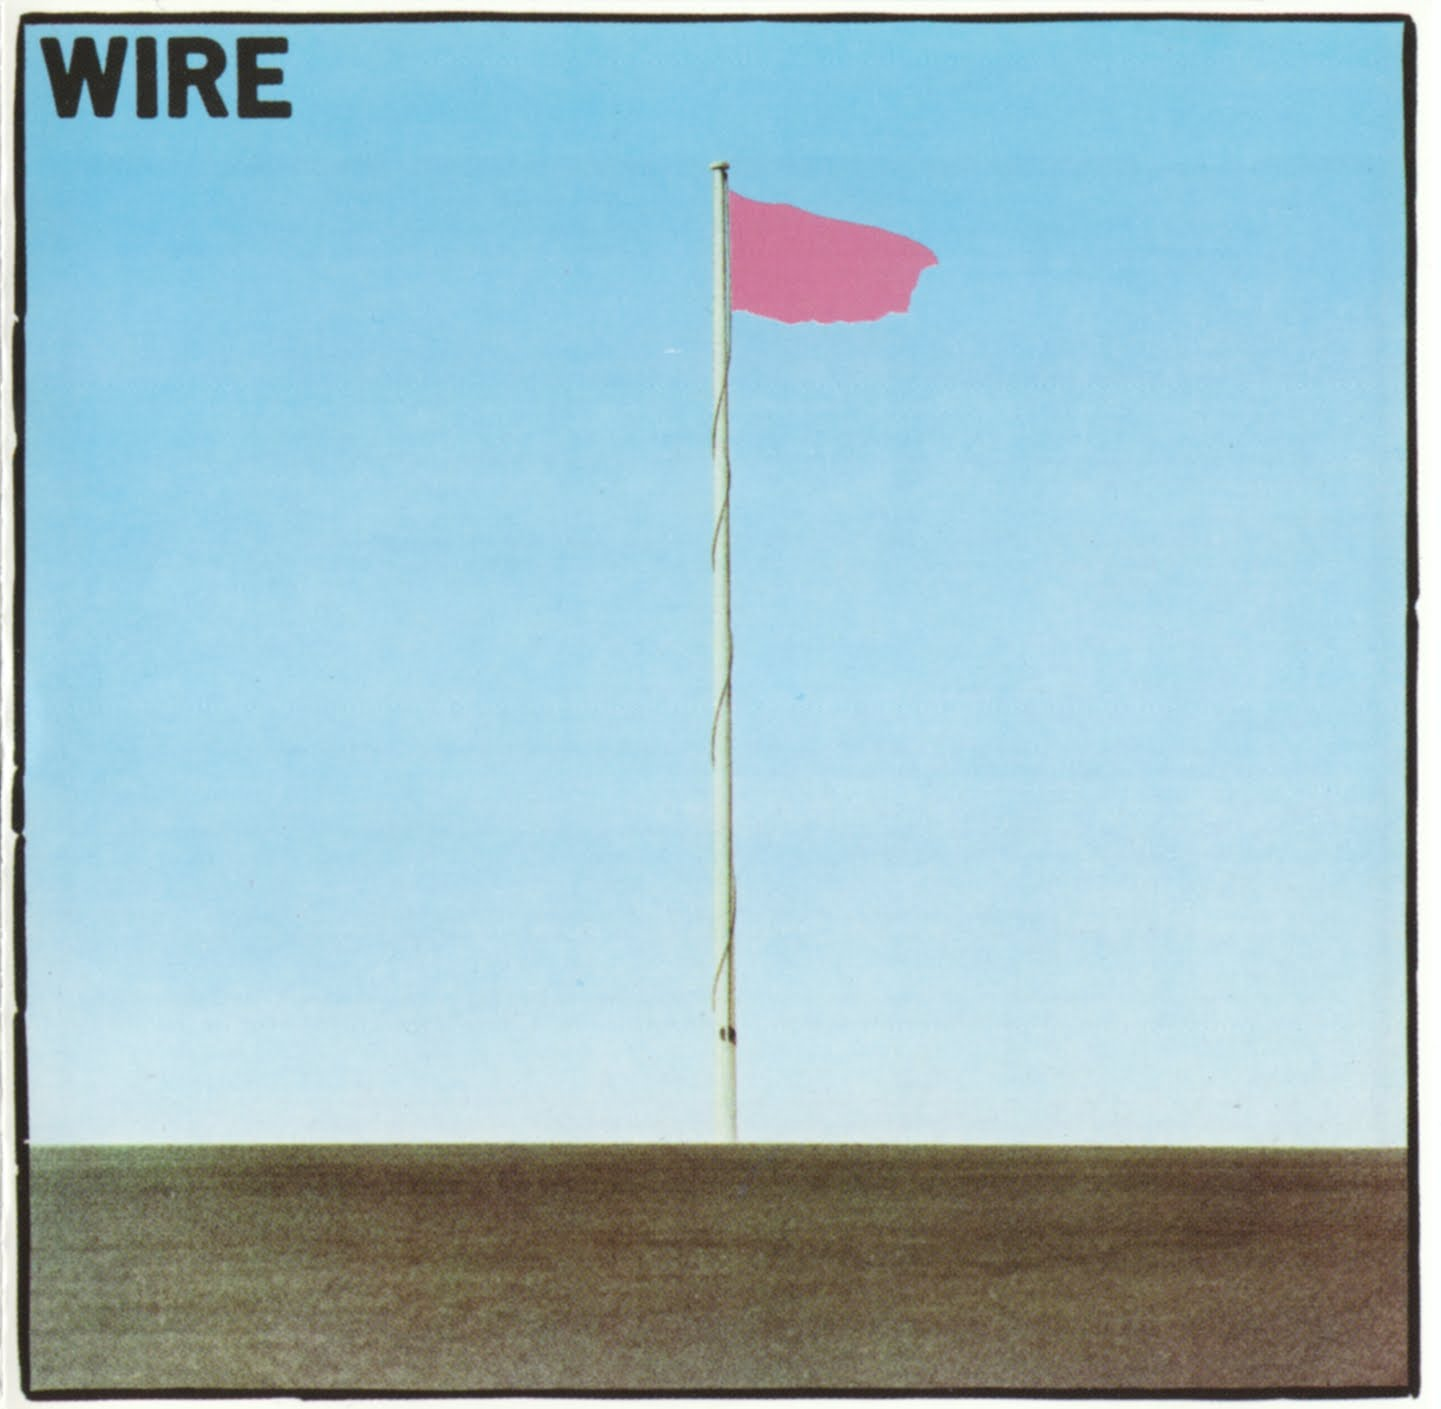 Graham Lewis of WIRE chooses his \